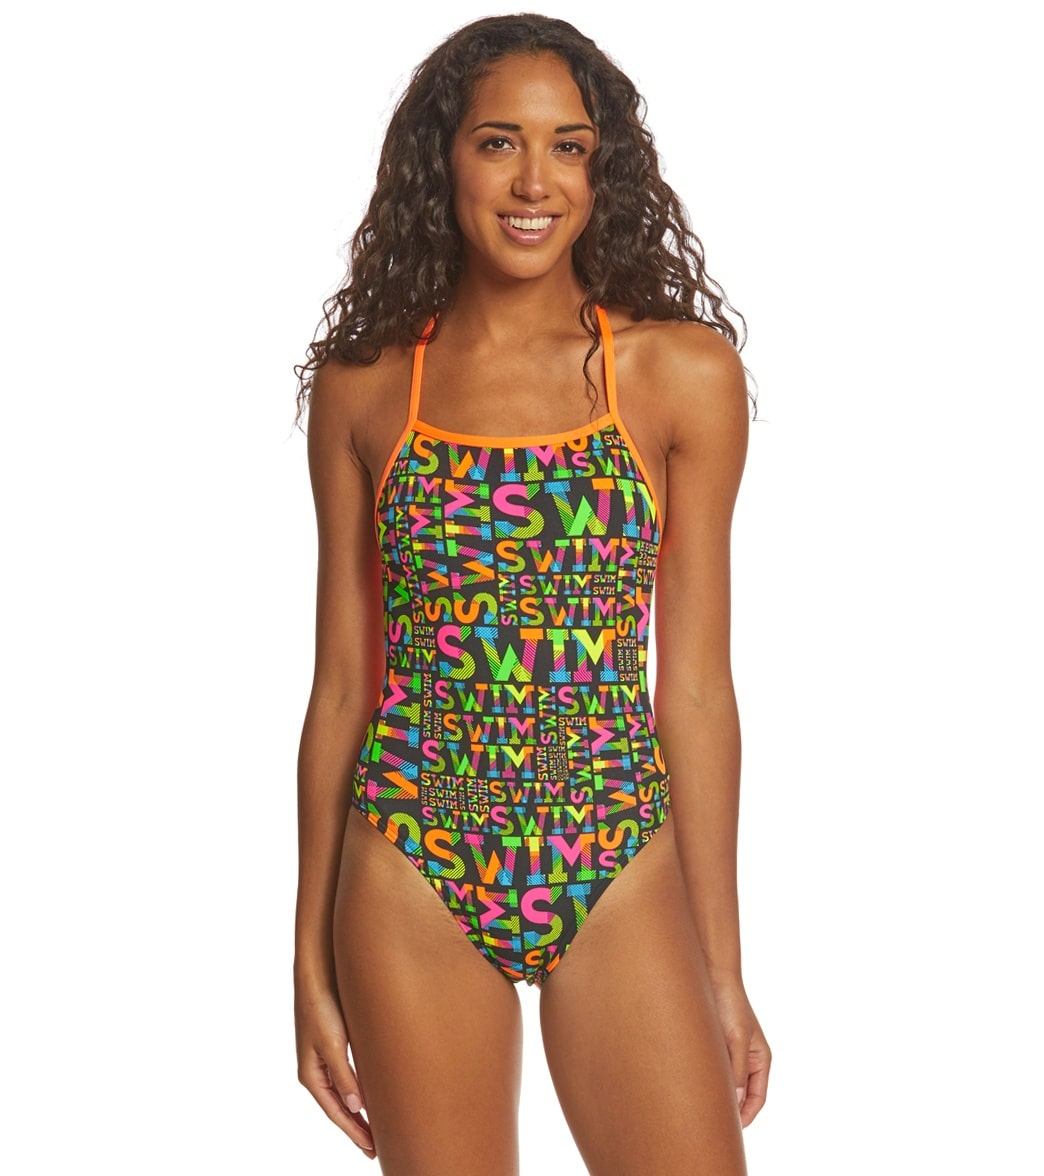 13dc8619e18 Funkita Women's Night Swim Strapped In One Piece Swimsuit at SwimOutlet.com  - Free Shipping